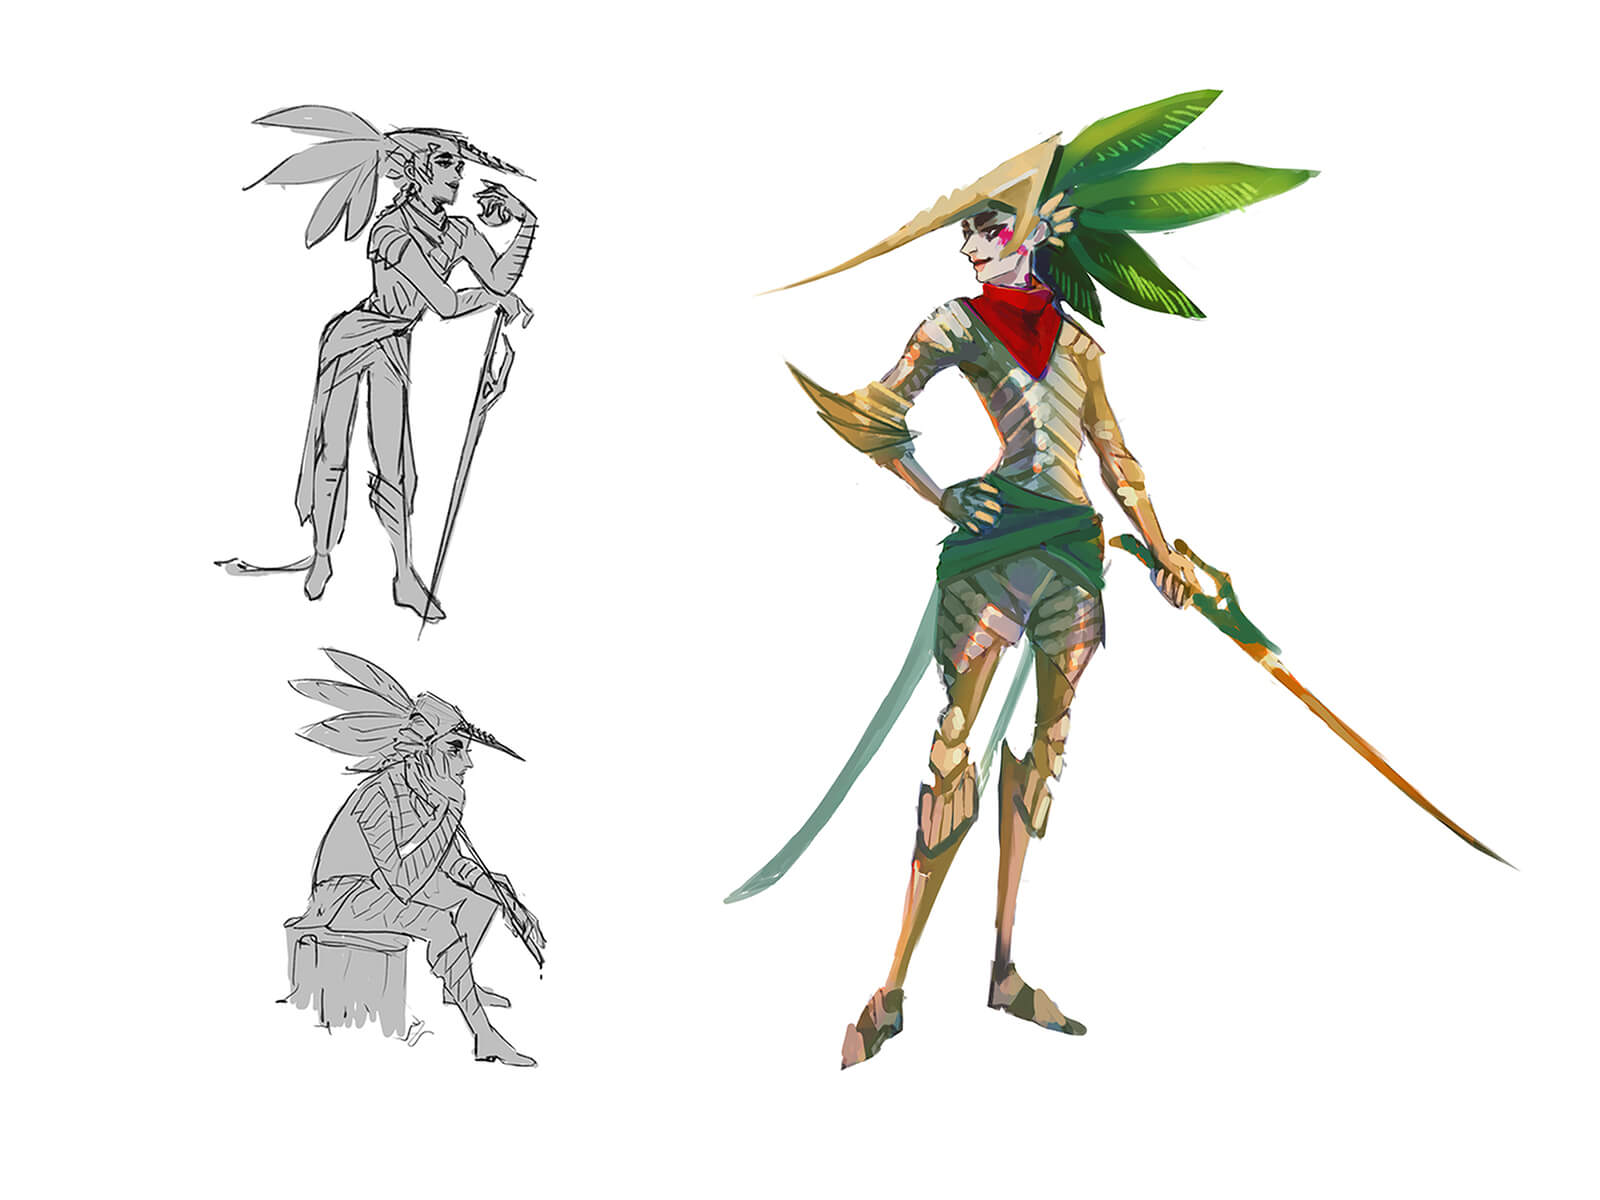 Sketches of a fairy carrying a sword